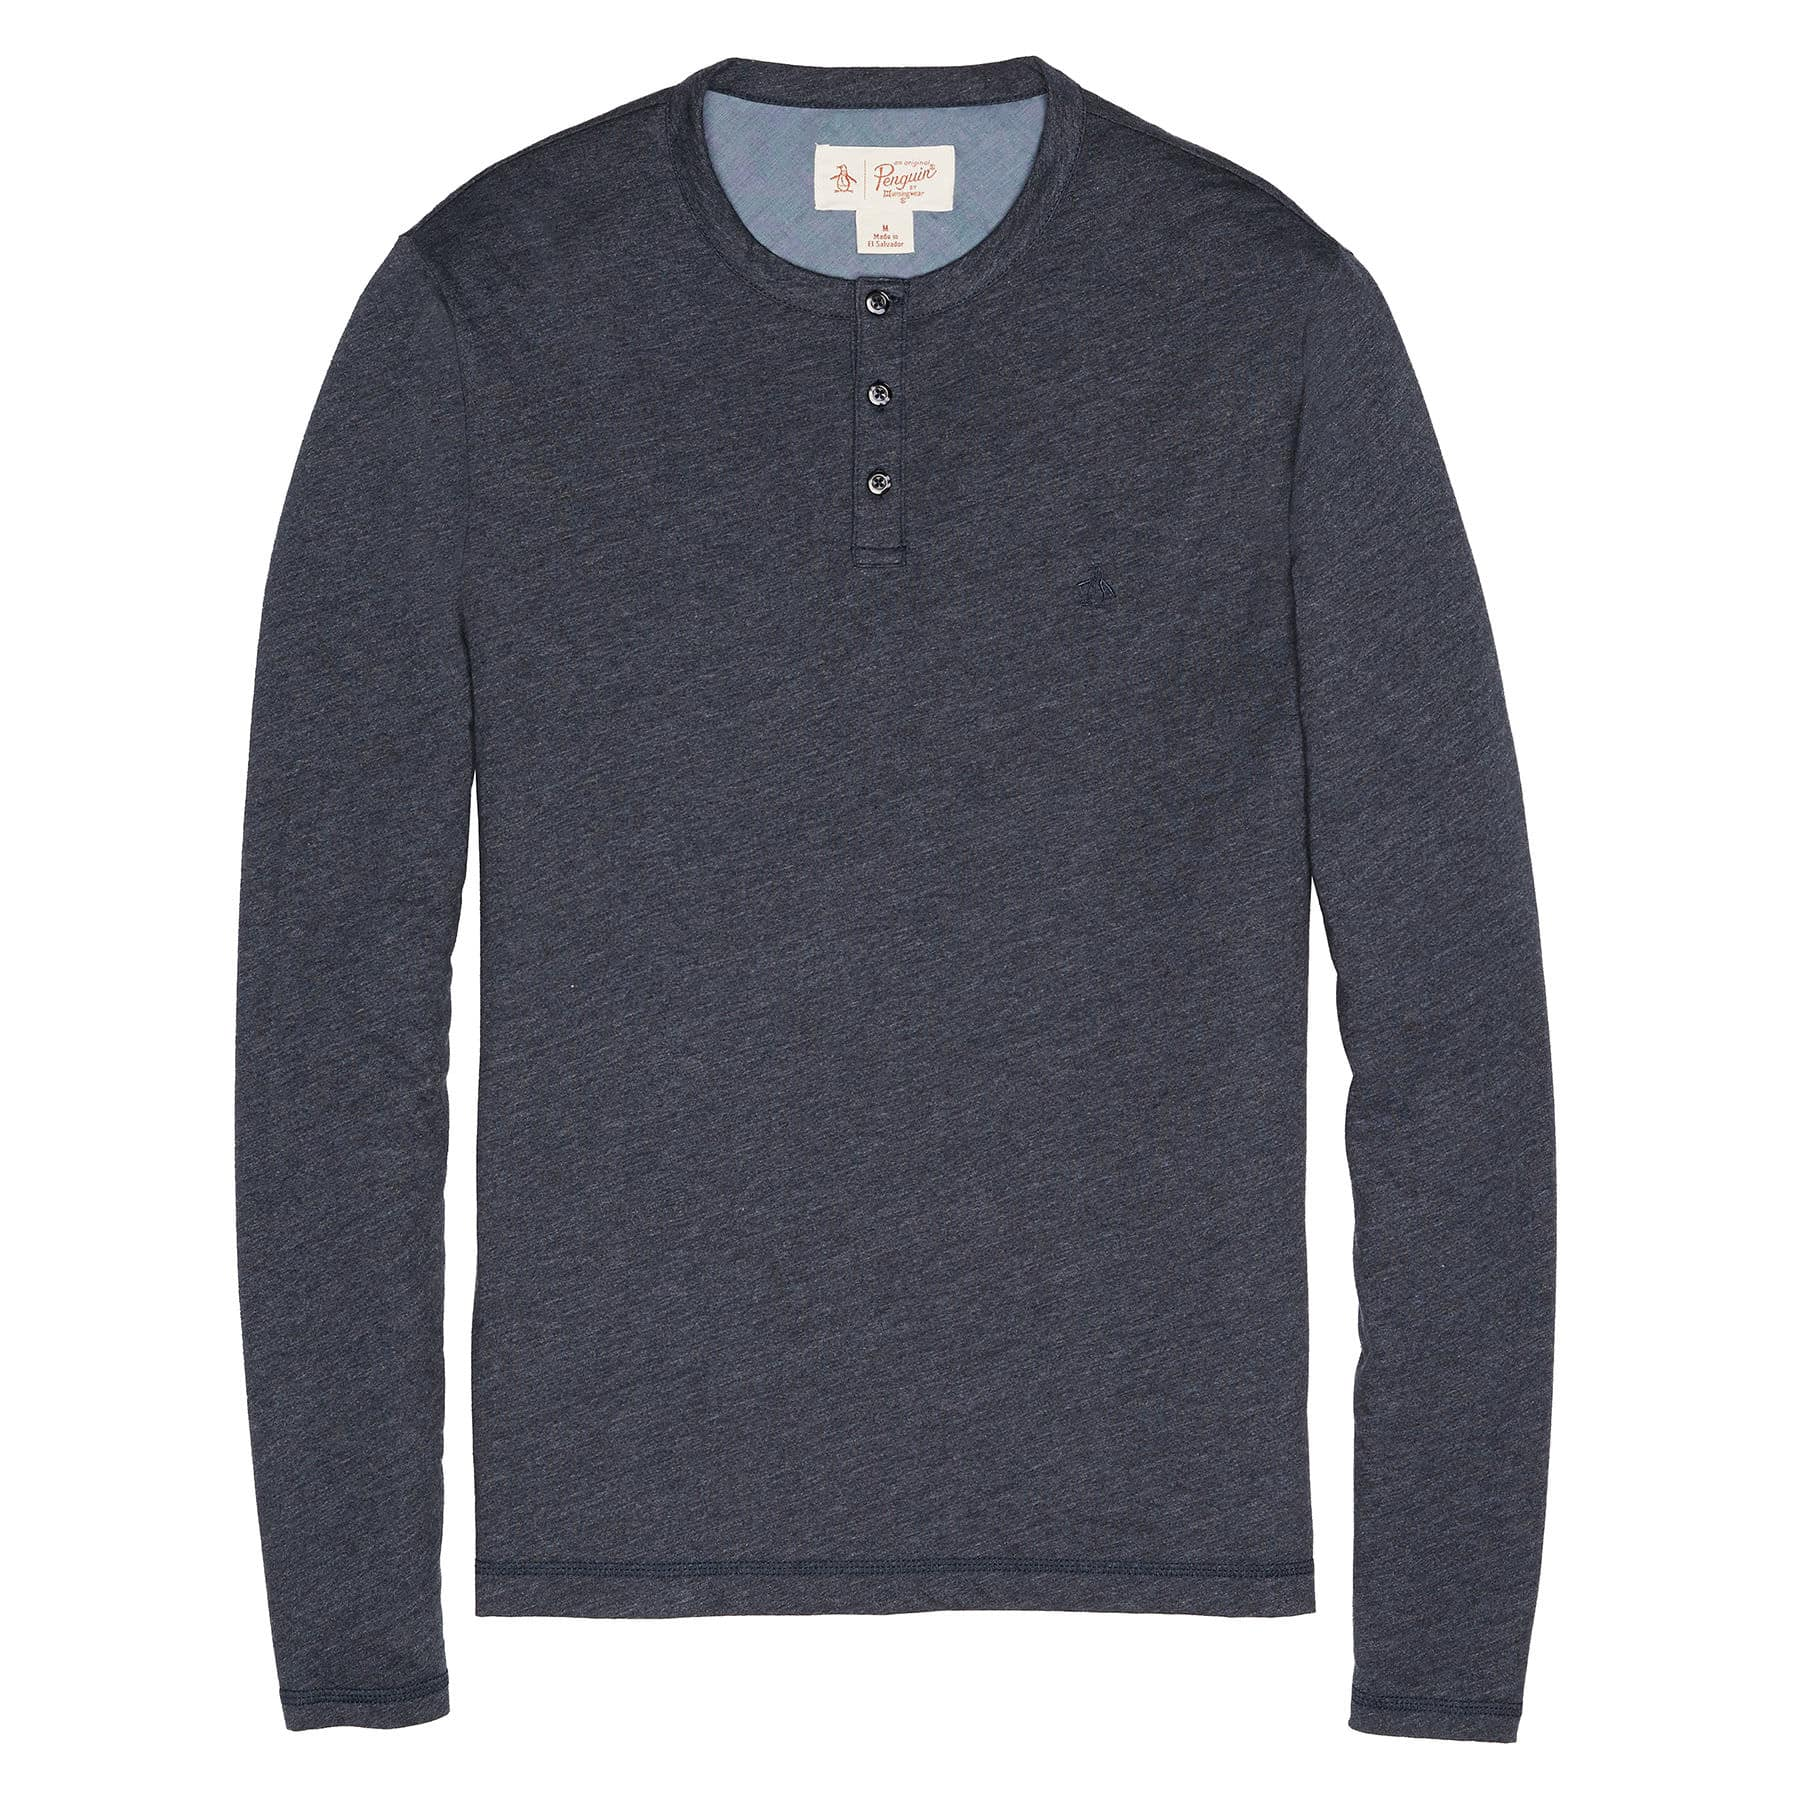 Original Penguin End of Season Sale: Up to 70% off + Extra 25% off Coupon *Greater Discount Now, Wed 12/27*